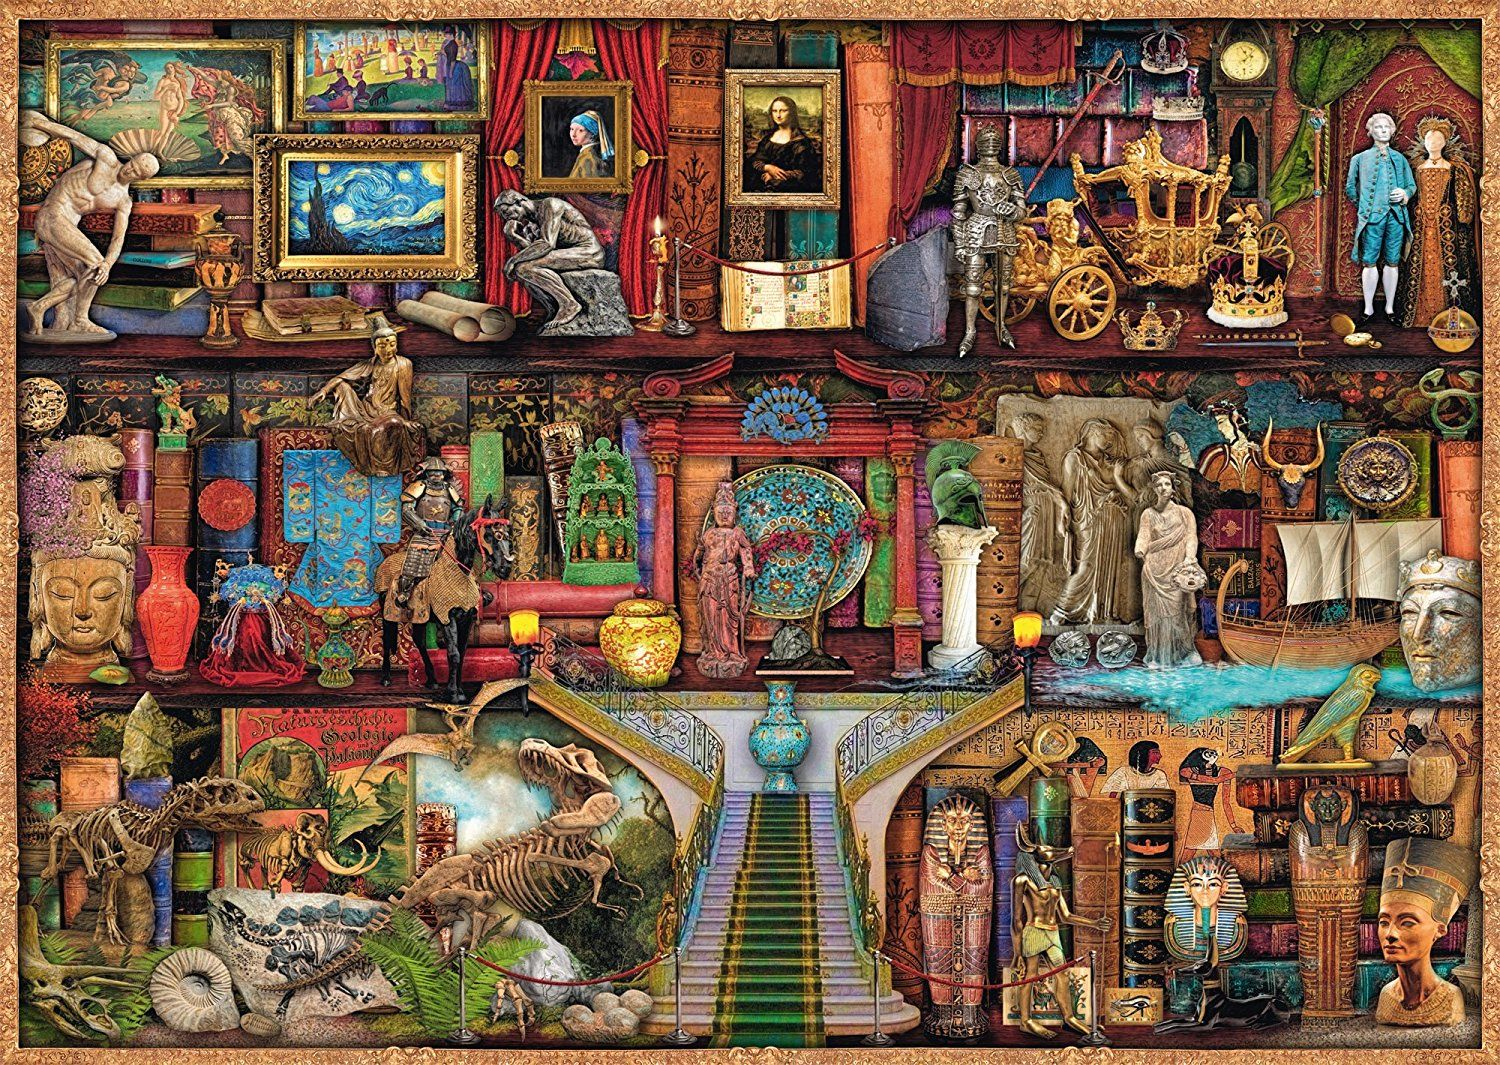 19827 Ravensburger Jigsaw Puzzle The Curious Cupboard No.6 1000 Pieces Age 12+